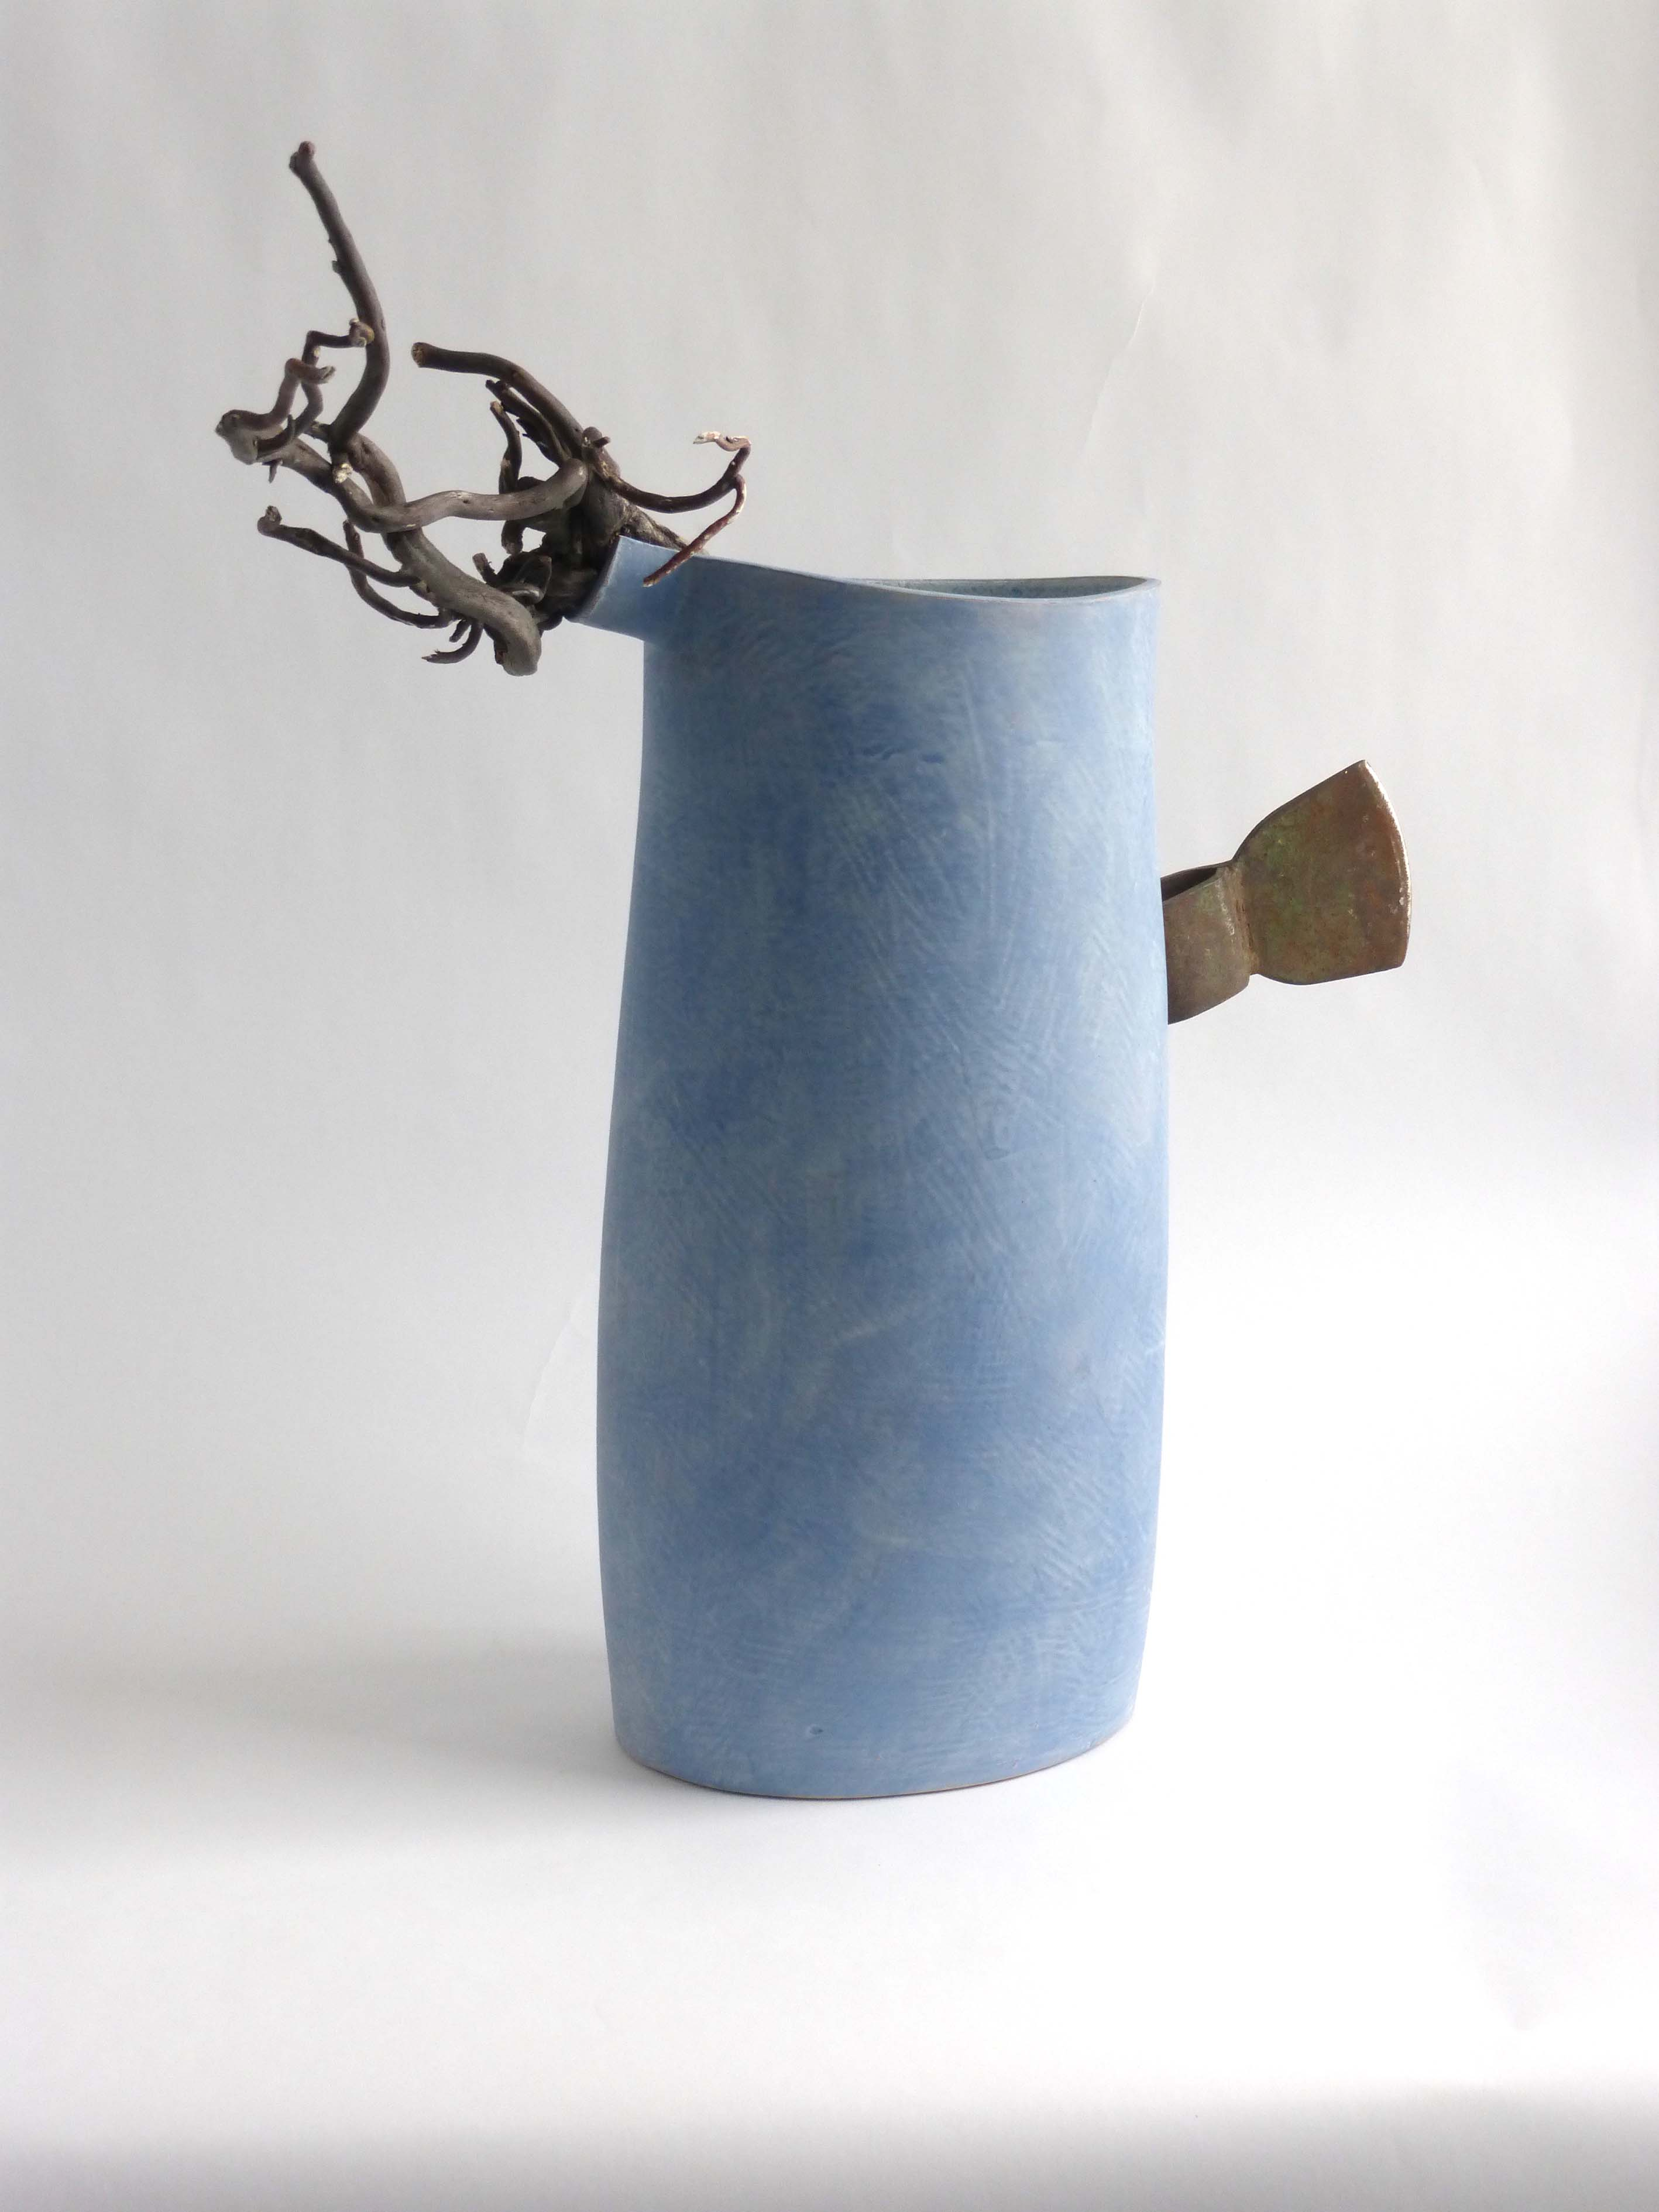 Mike Byrne, Spill, fired clay, metal, wood, 2015, 44 x 22 x 17cm, EUR 500